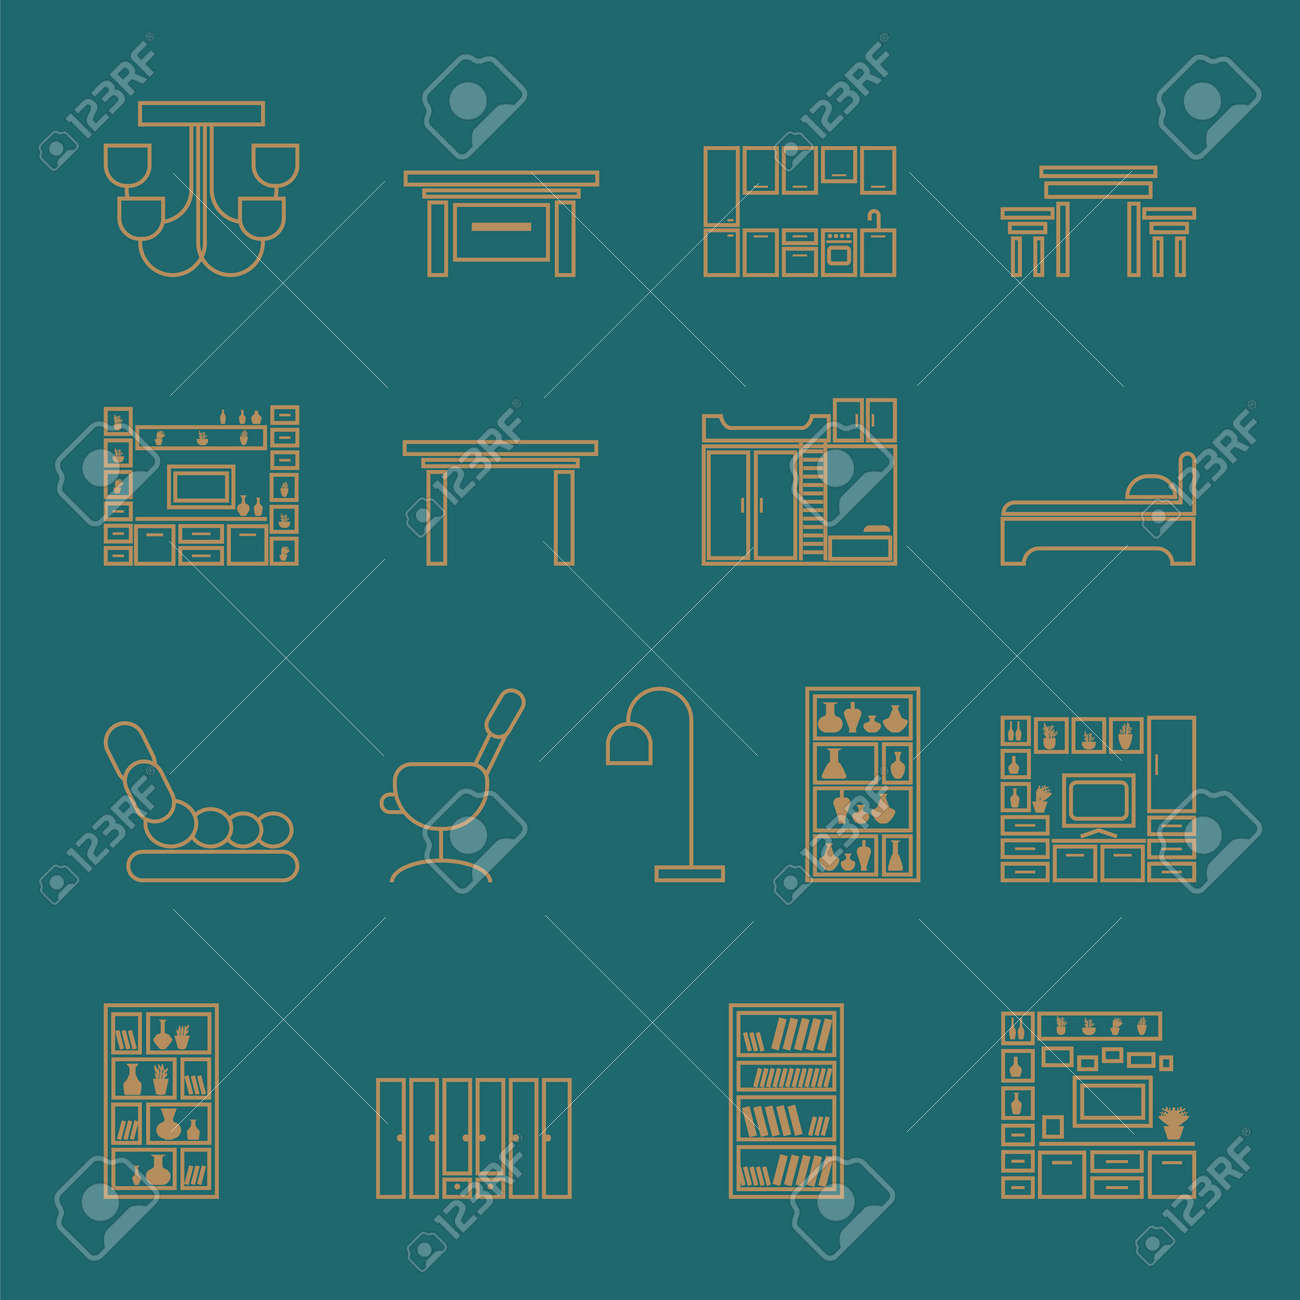 Furniture icons set. outline vector illustration on a turquoise background - 123416055